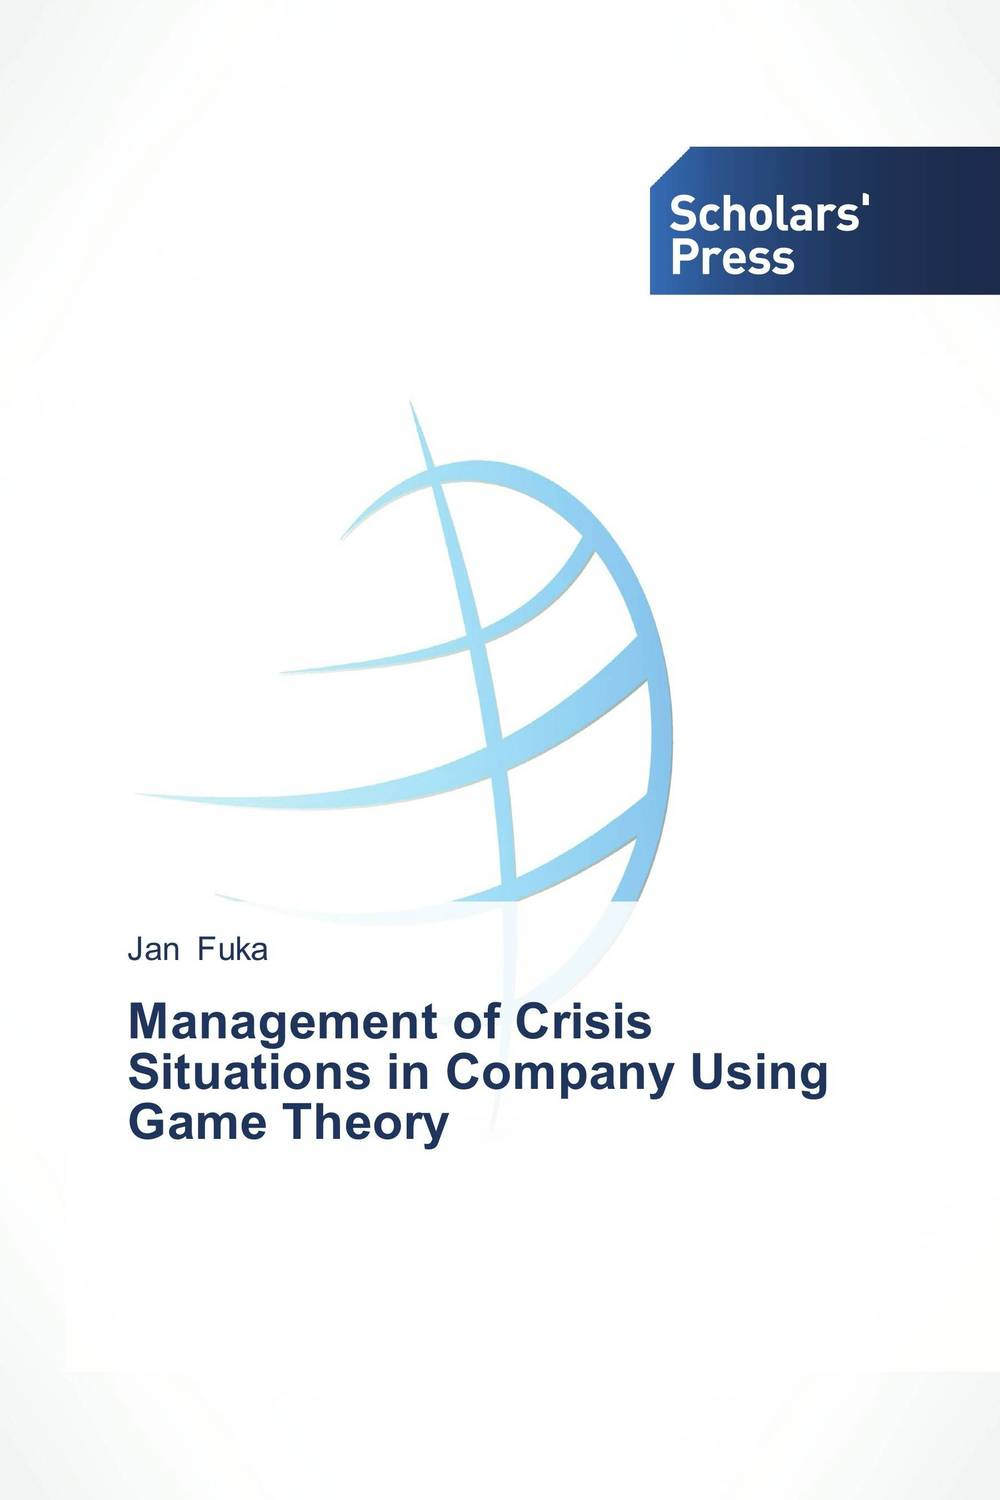 Management of Crisis Situations in Company Using Game Theory terrorism kashmir dispute and possible solutions